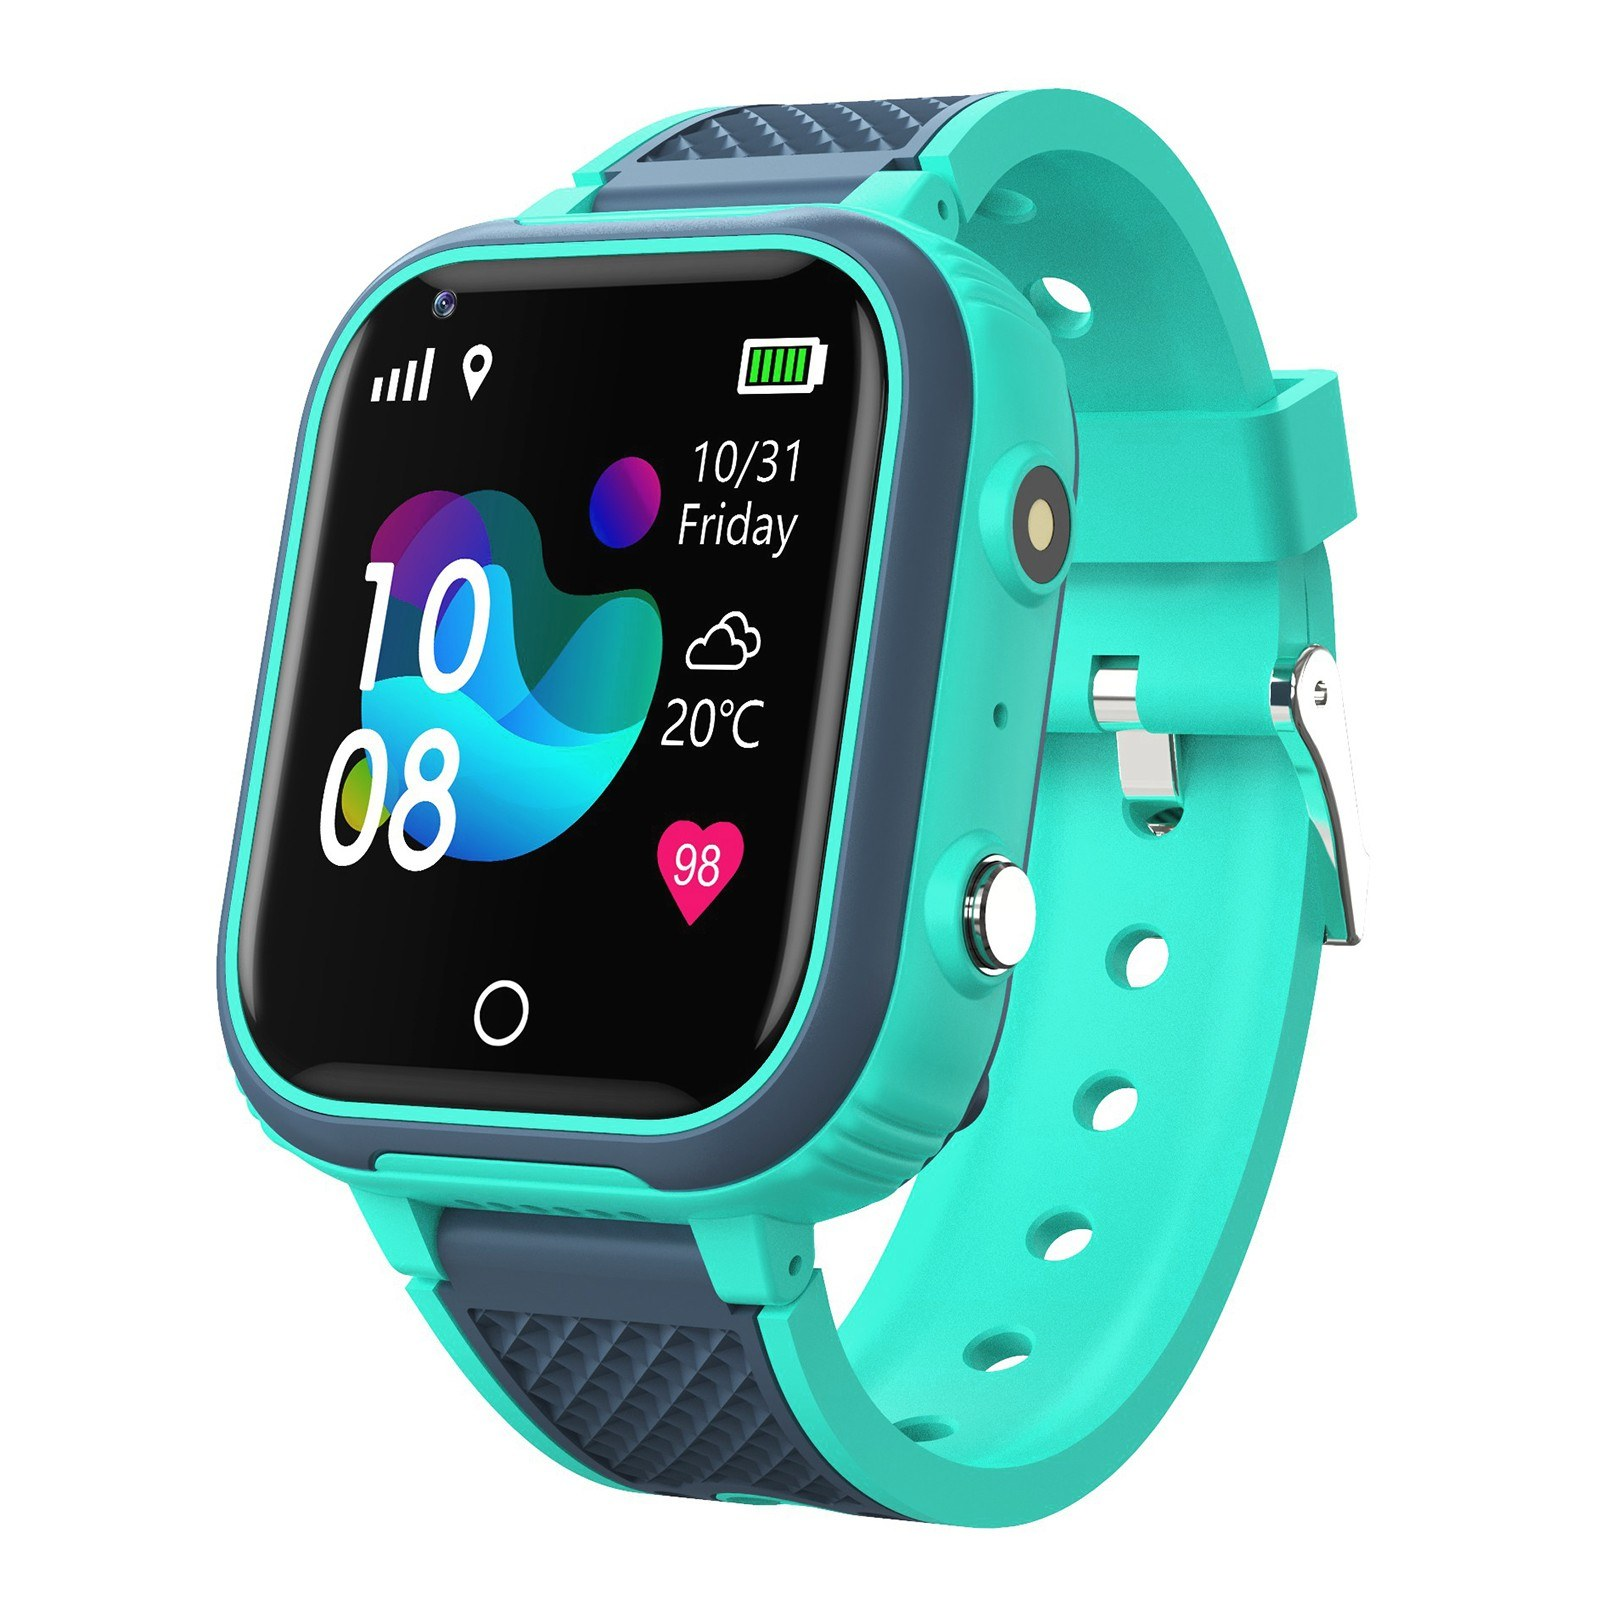 tomtop.com - 54% OFF Q10 1.4 inches Touch Screen 4G Kids Smart Watch, Limited Offers $43.99